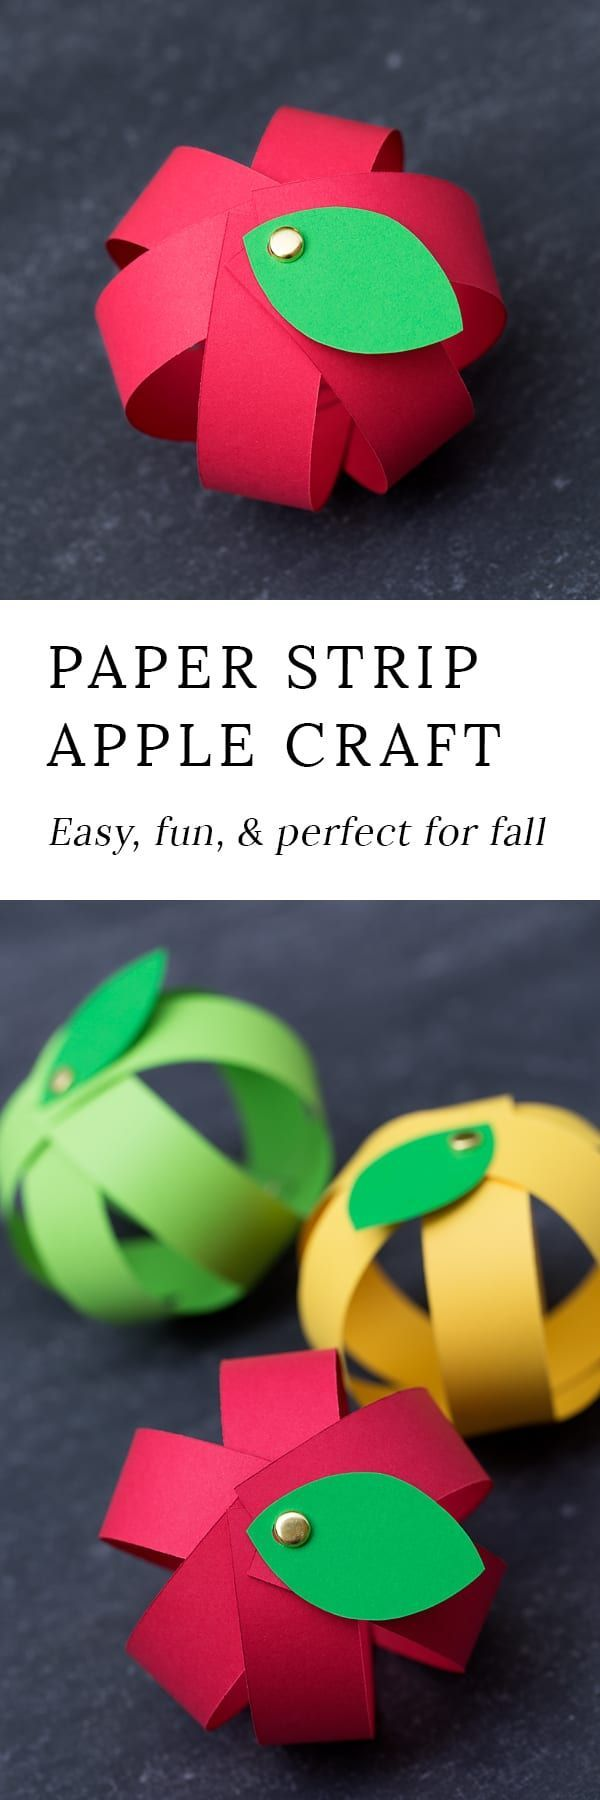 0011 Make Your Own Easy Paper Apple Craft with Free Printable